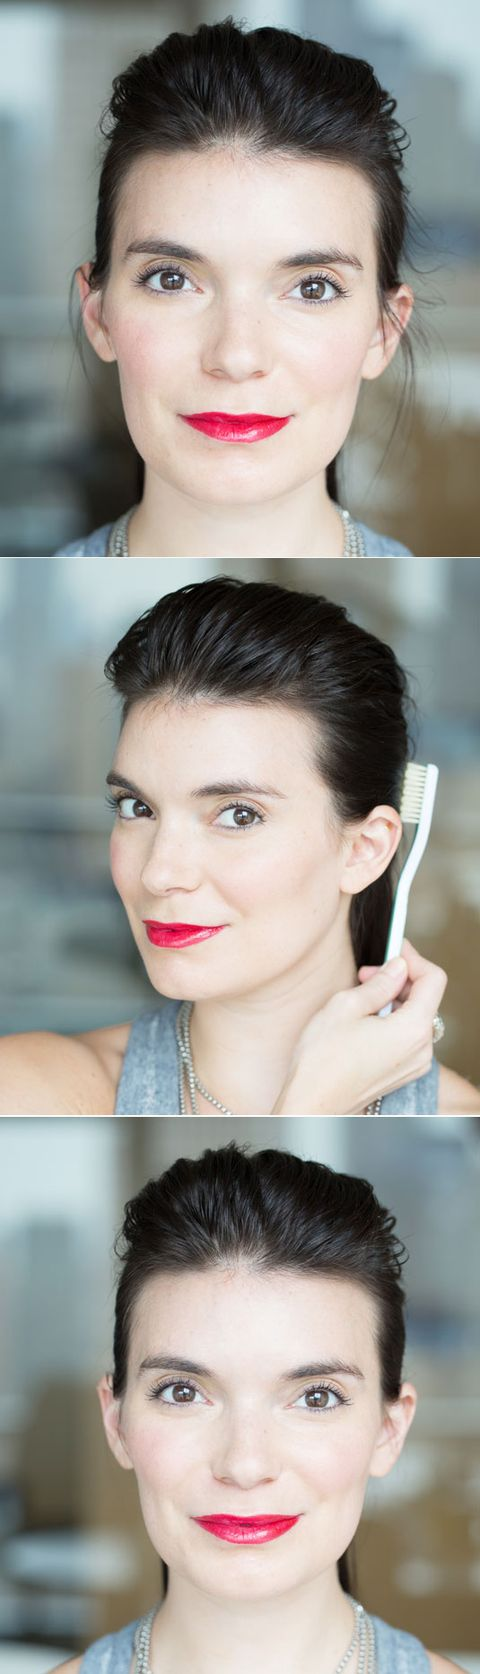 12 life changing beauty hacks you can do with a toothbrush